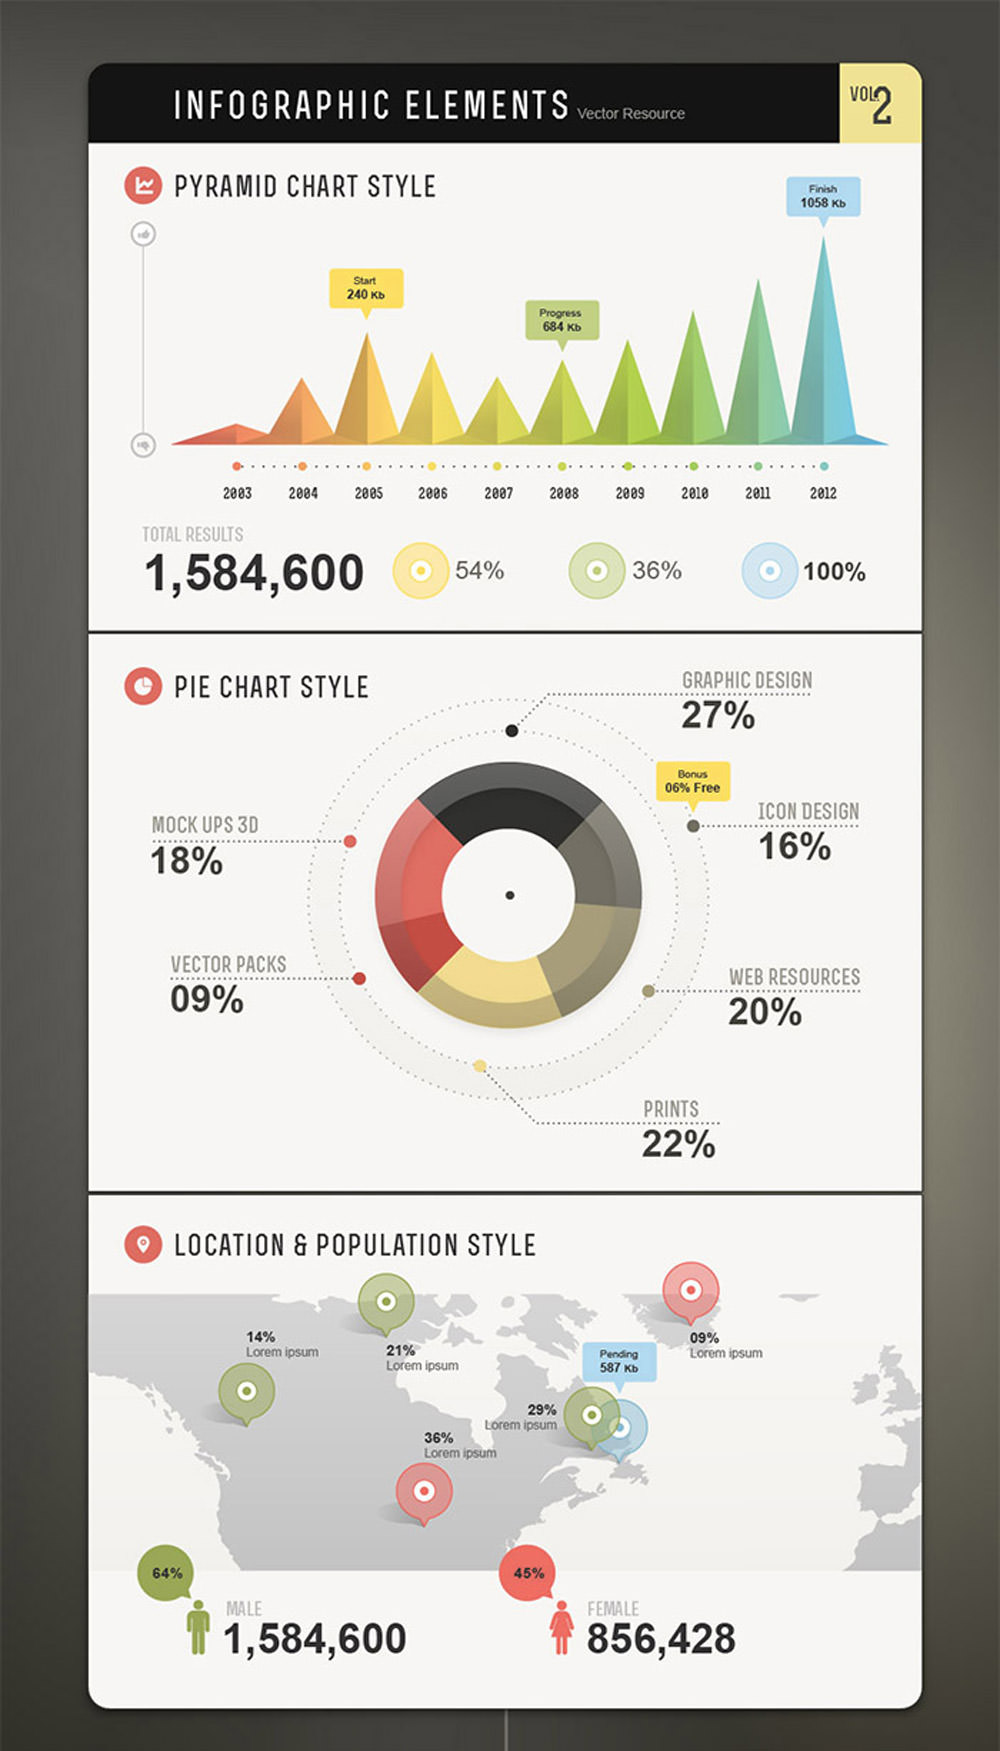 Infographic Vector Elements Vol2